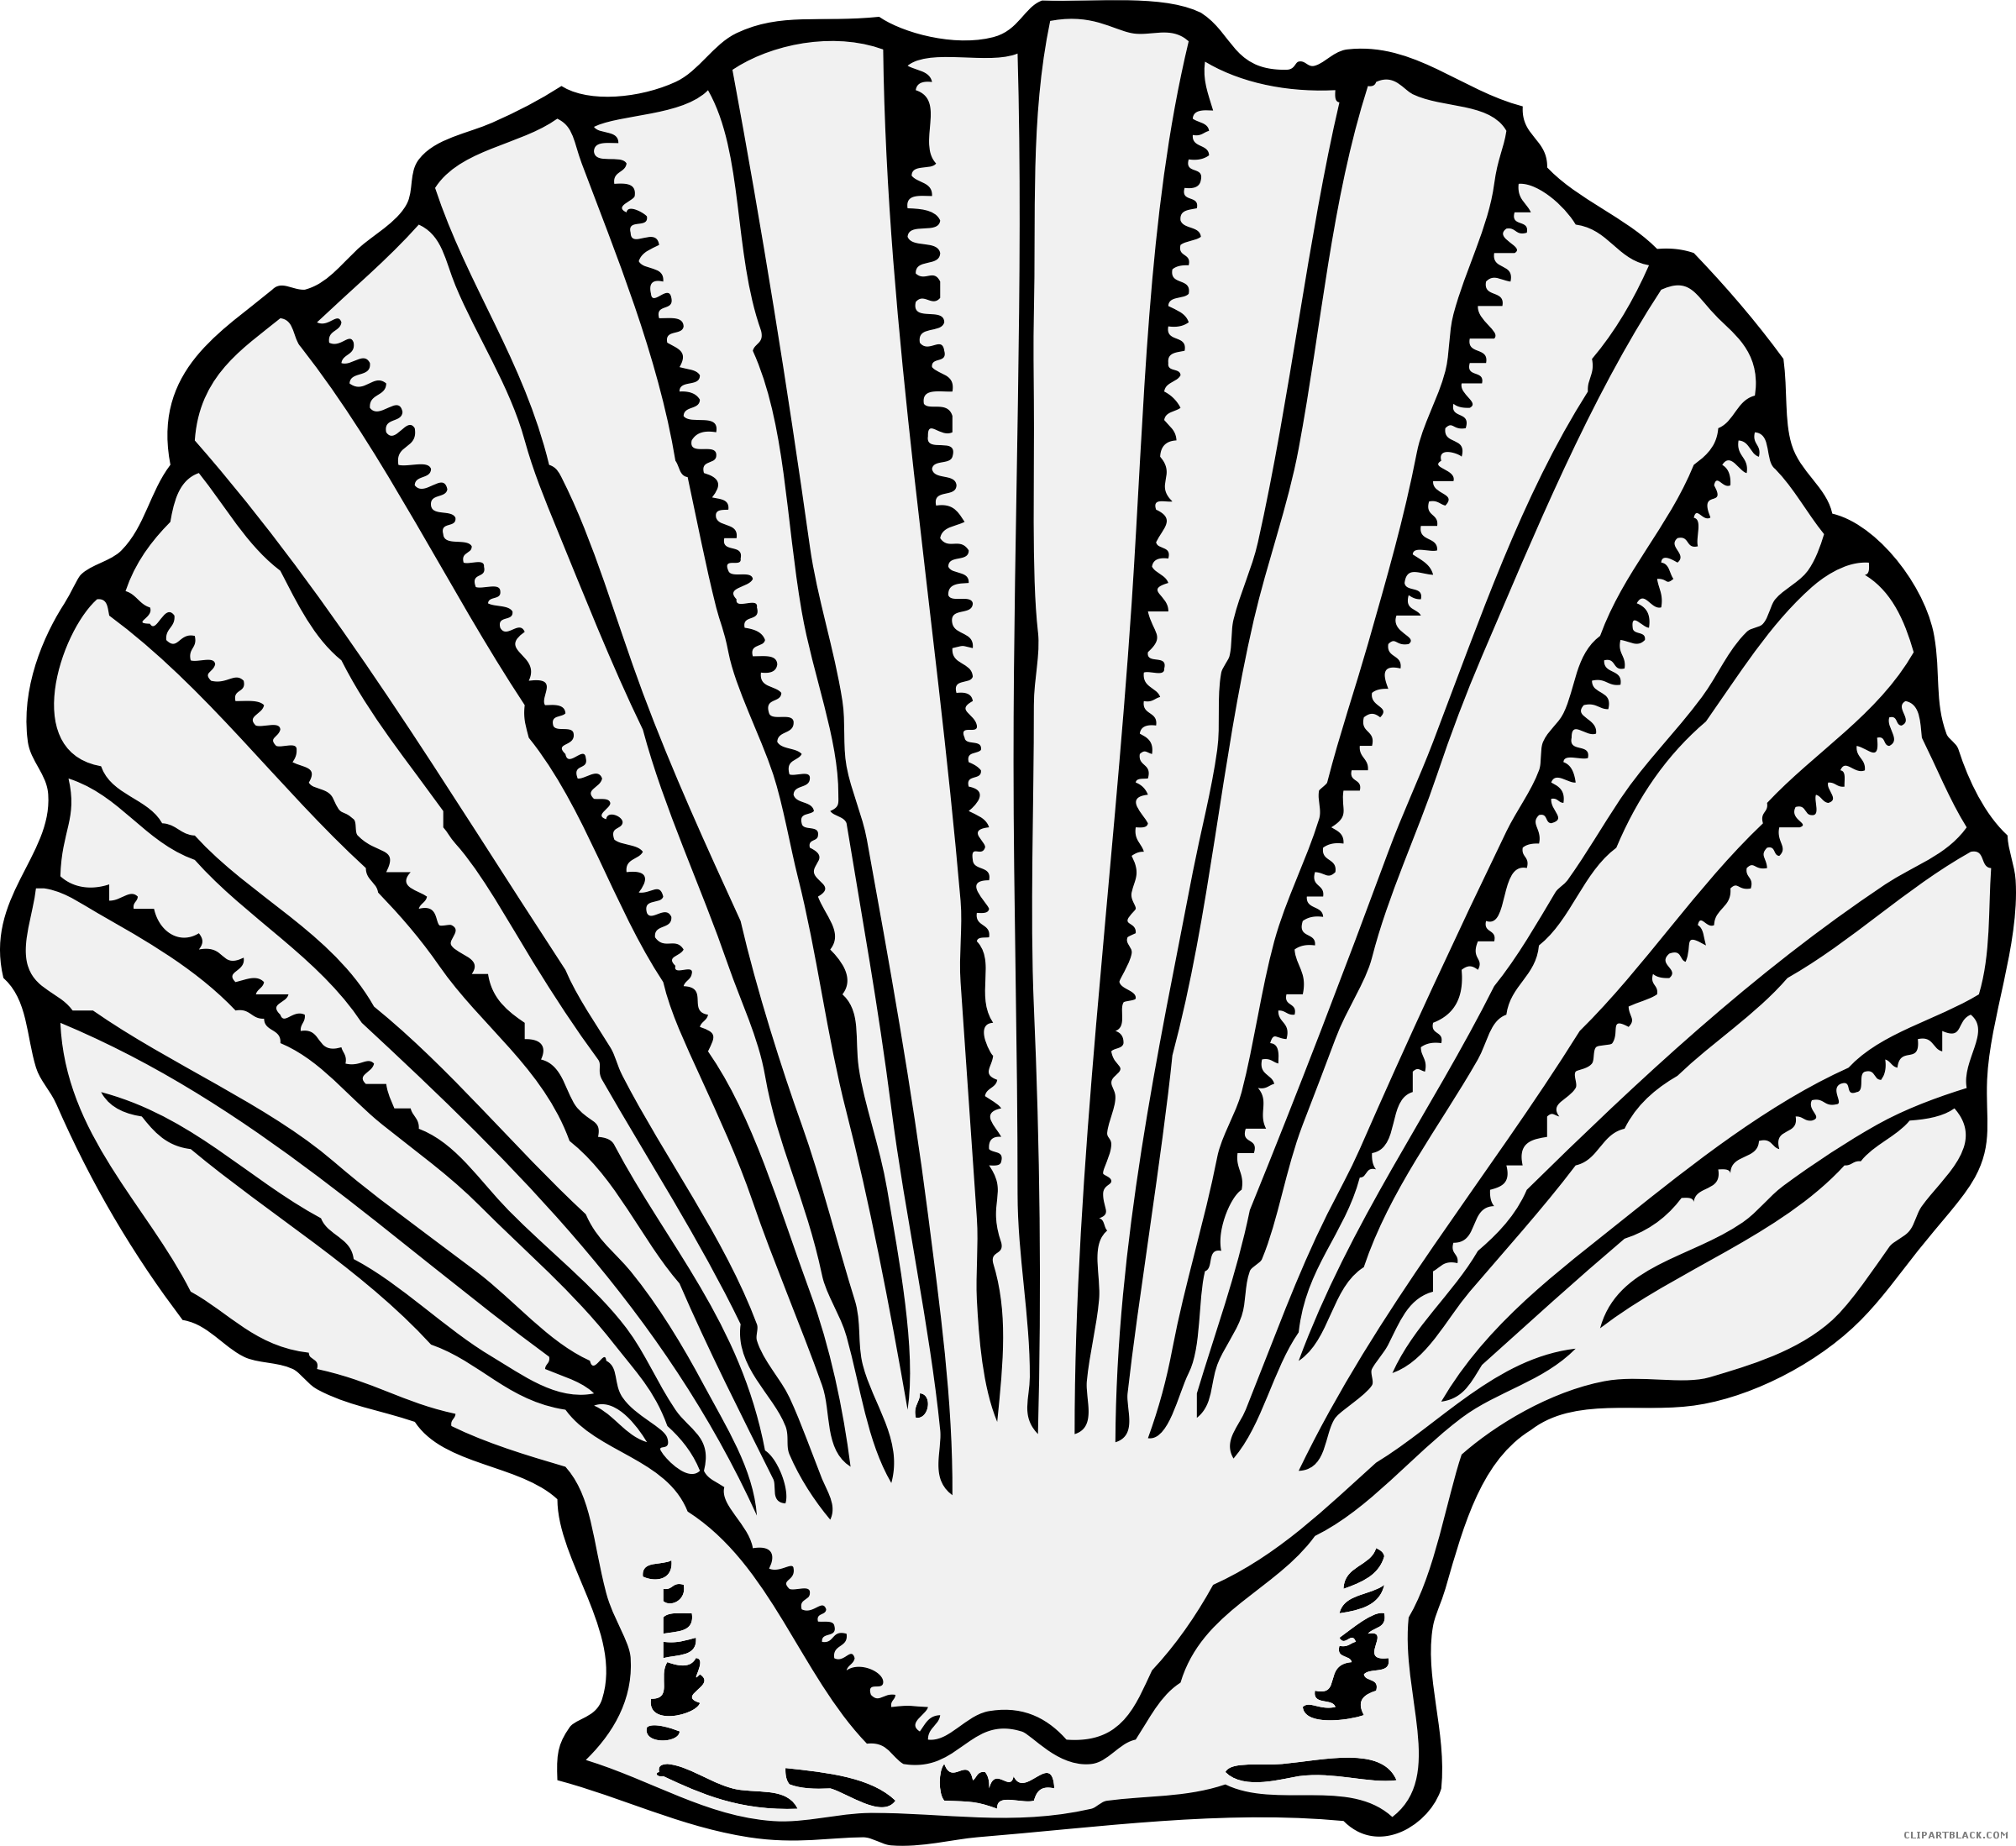 Jellyfish clipart animal shell. Scallop free black white